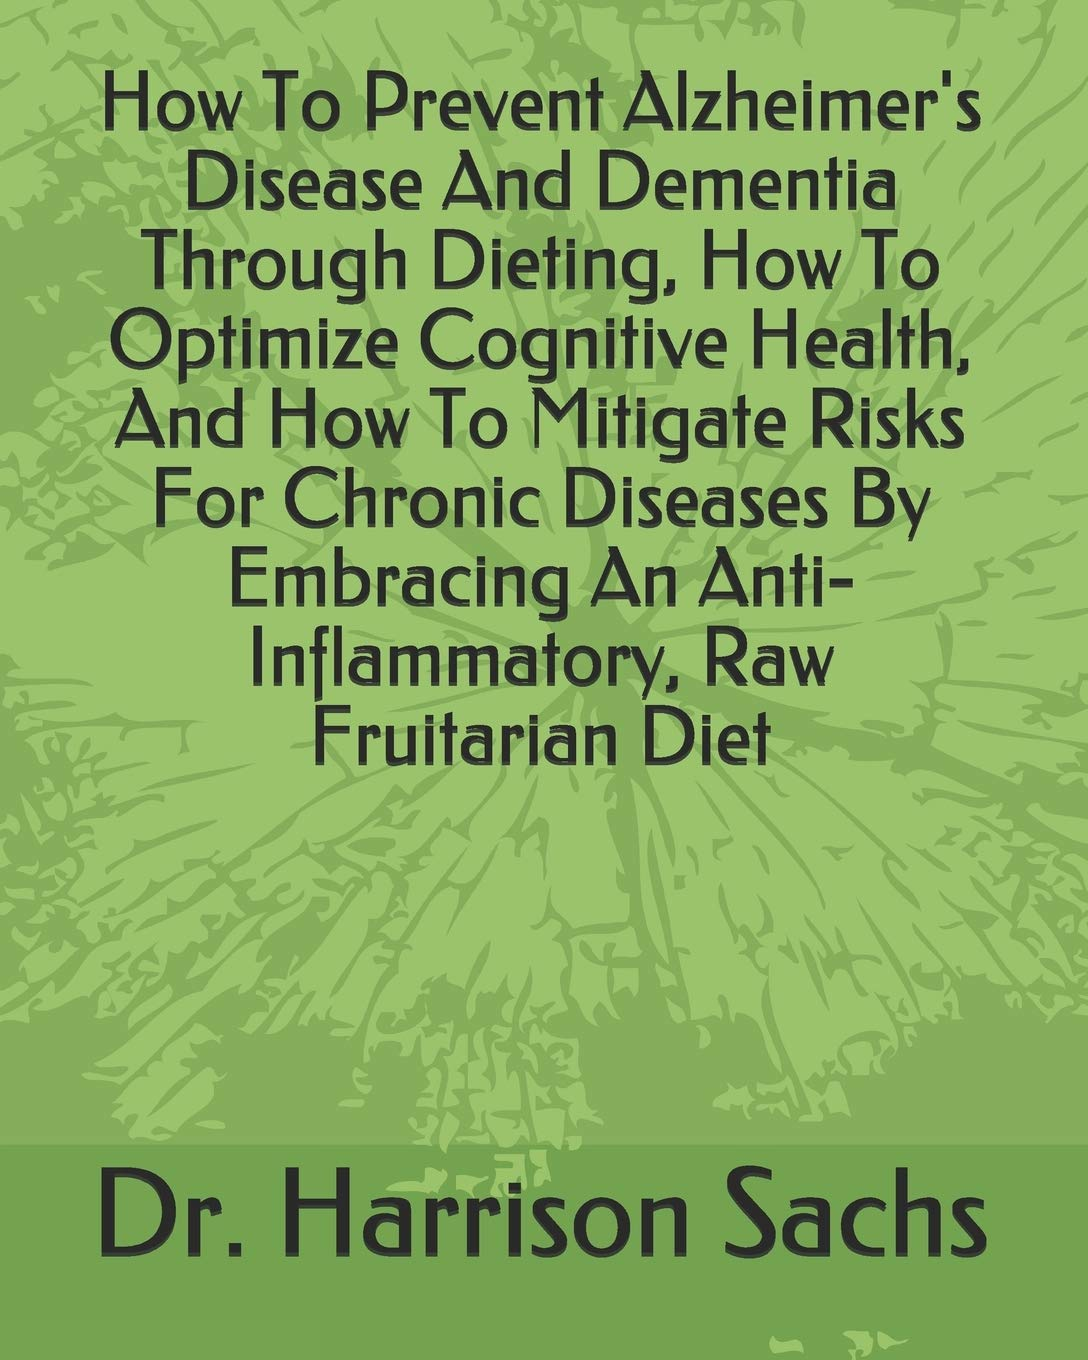 How To Prevent Alzheimers Disease And Dementia Through ...